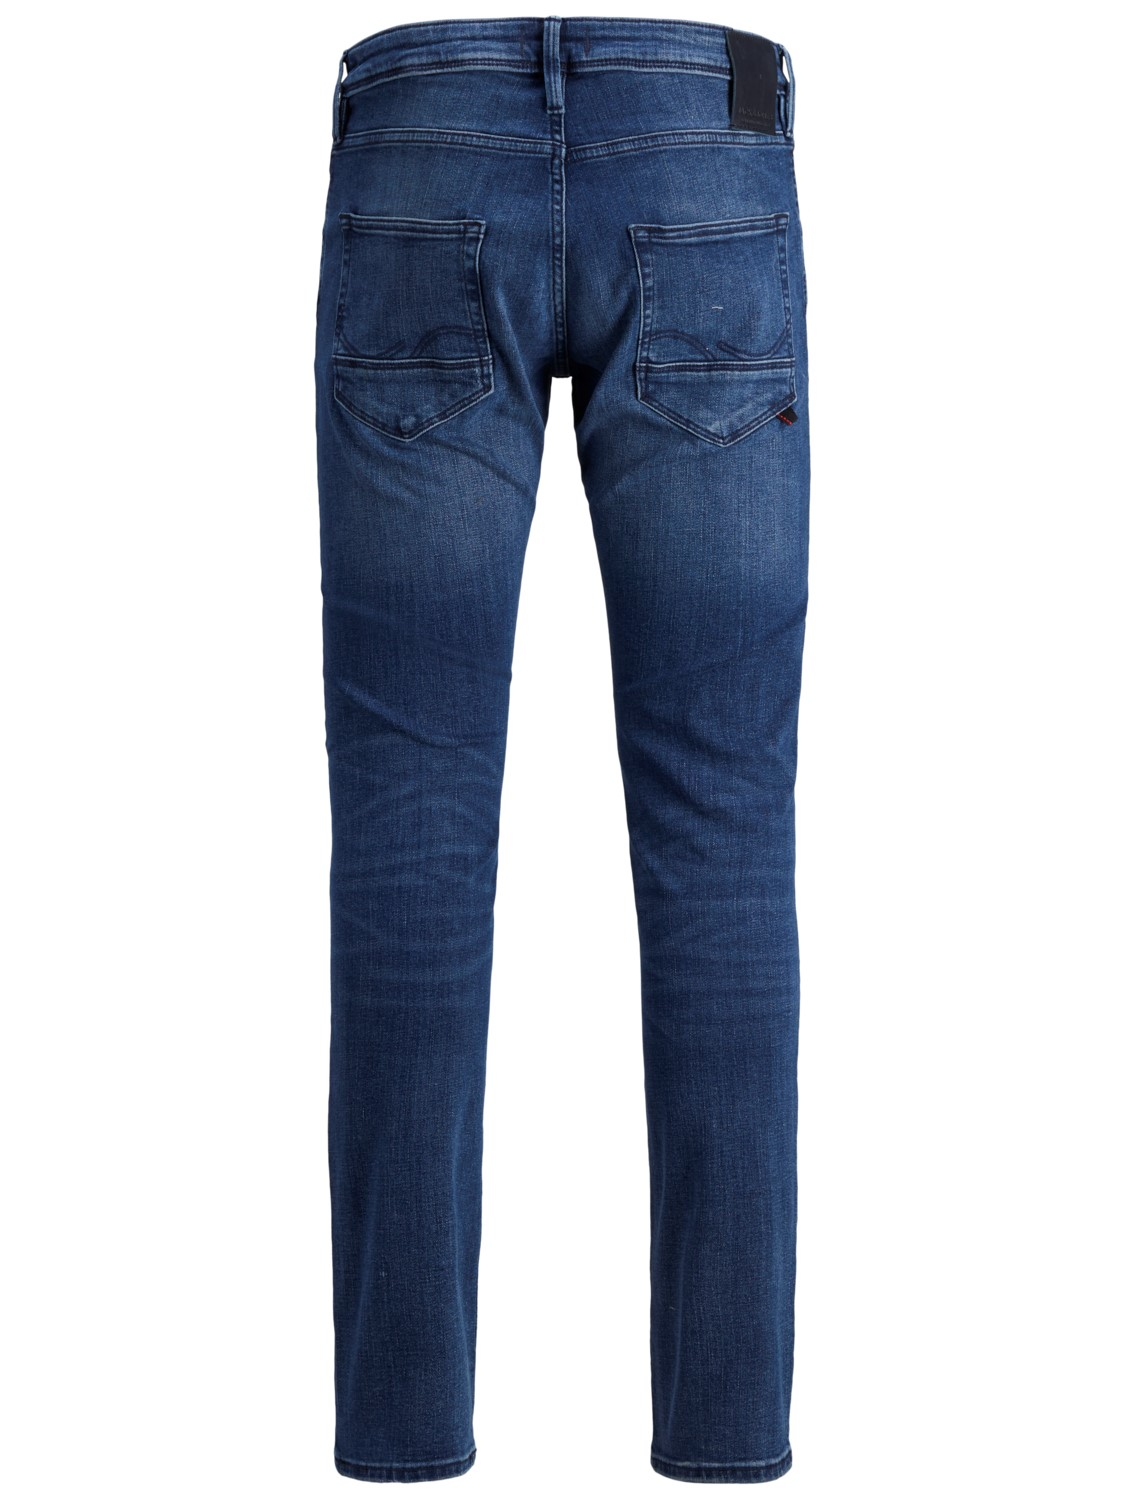 jack-jones-herren-jeans-jjiglenn-jjfox-am-795-50sps-sts-slim-fit-blau-blue-denim